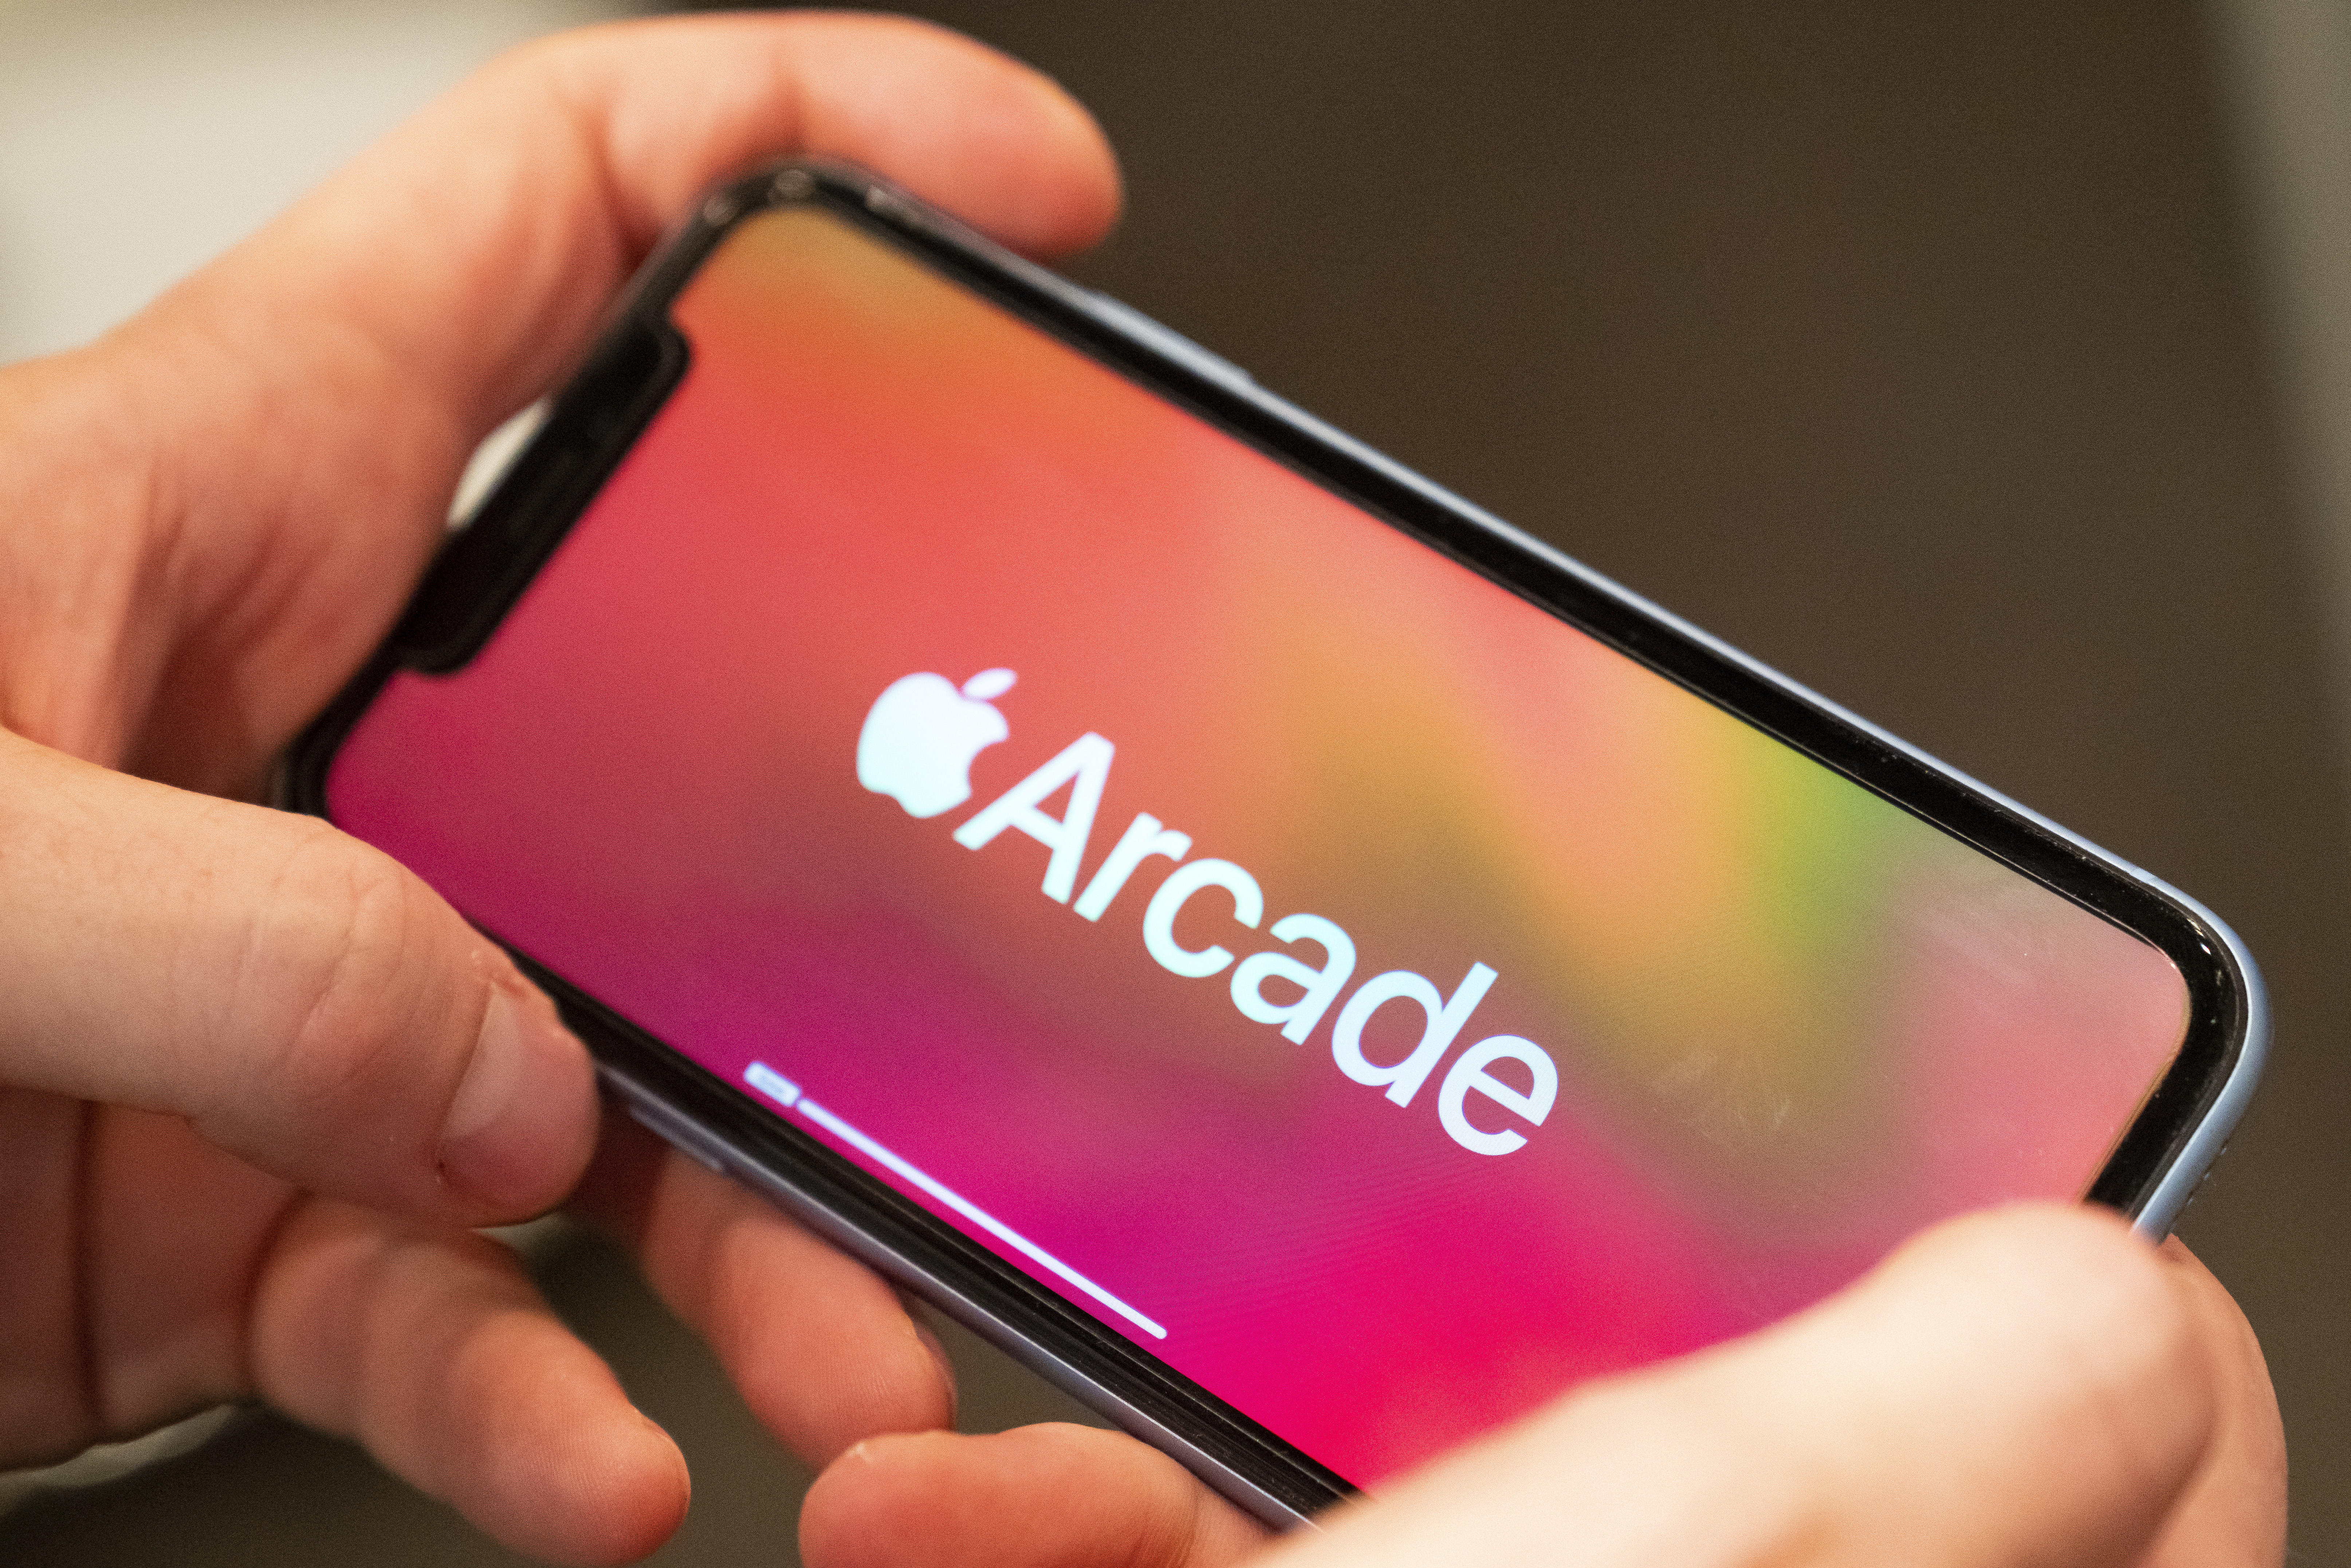 , Apple Arcade: Every game you can play on iPhone, iPad, Mac and Apple TV – Source CNET Computer News, iBSC Technologies - learning management services, LMS, Wordpress, CMS, Moodle, IT, Email, Web Hosting, Cloud Server,Cloud Computing